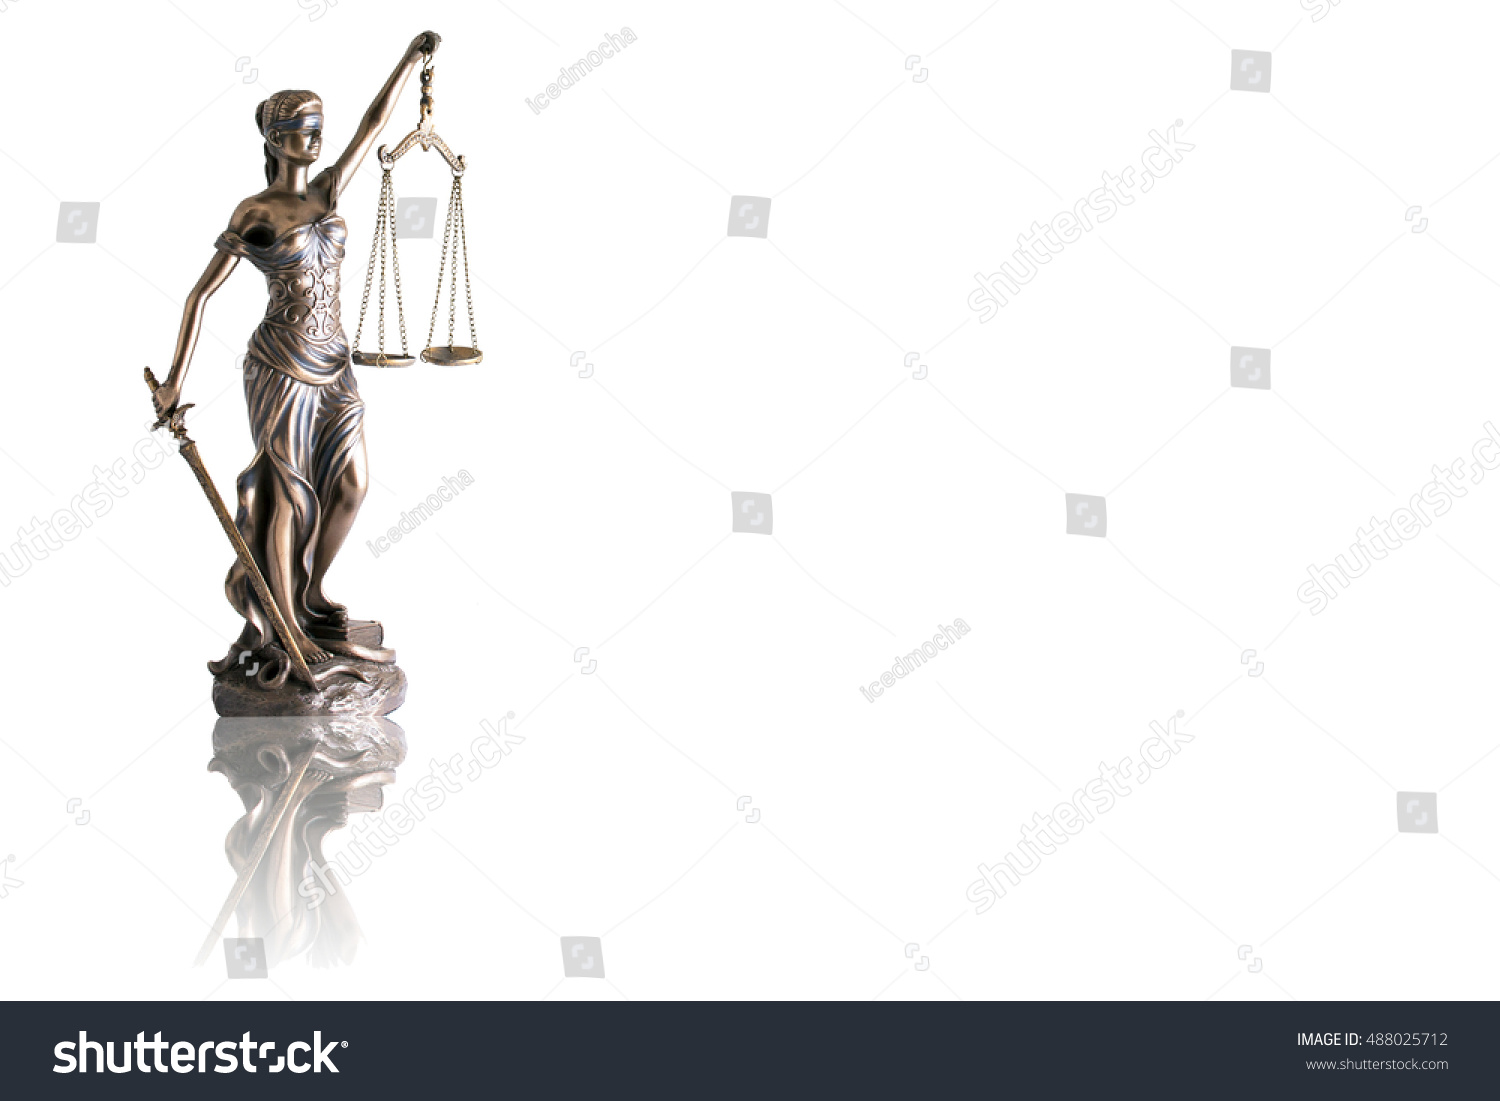 Lady justice themis reflection isolated on stock photo 488025712 lady justice or themis with reflection isolated on white background and space for text buycottarizona